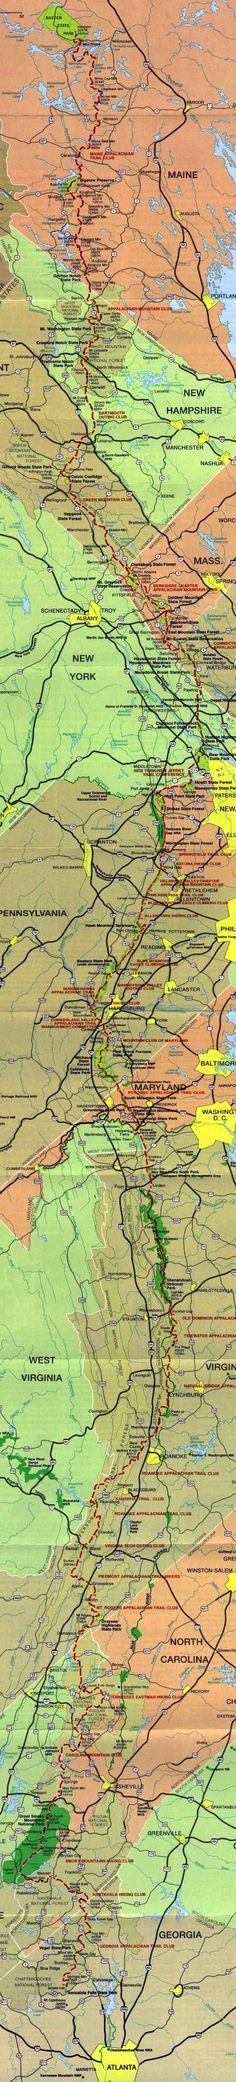 Appalachian Trail Map. I think this one is better at encompassing the magnitude of such a hike.